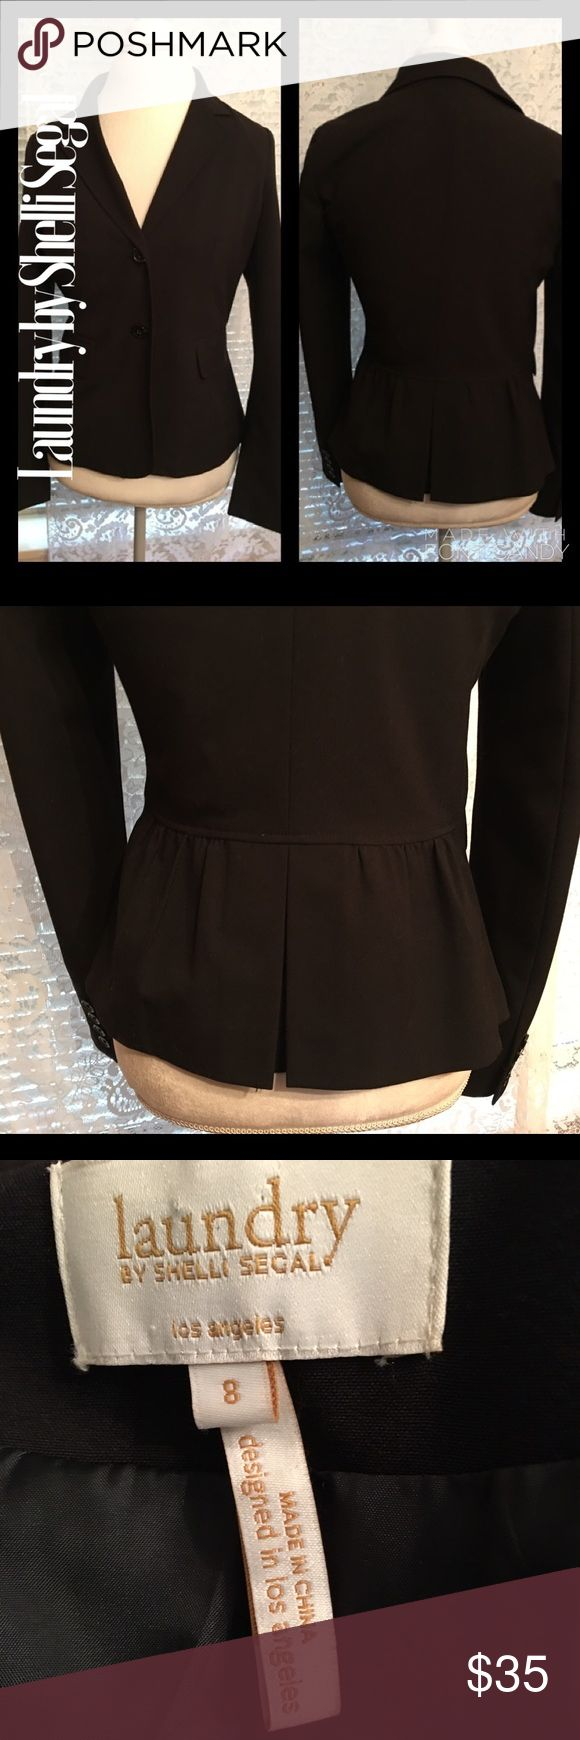 Classy Black Blazer Laundry By Shelli Segal. Classy Black Blazer Laundry By Shelli Segal.  Perfect condition. Goes well with black and white striped dress in my closet by Laundry. Beautiful. Laundry by Shelli Segal Jackets & Coats Blazers